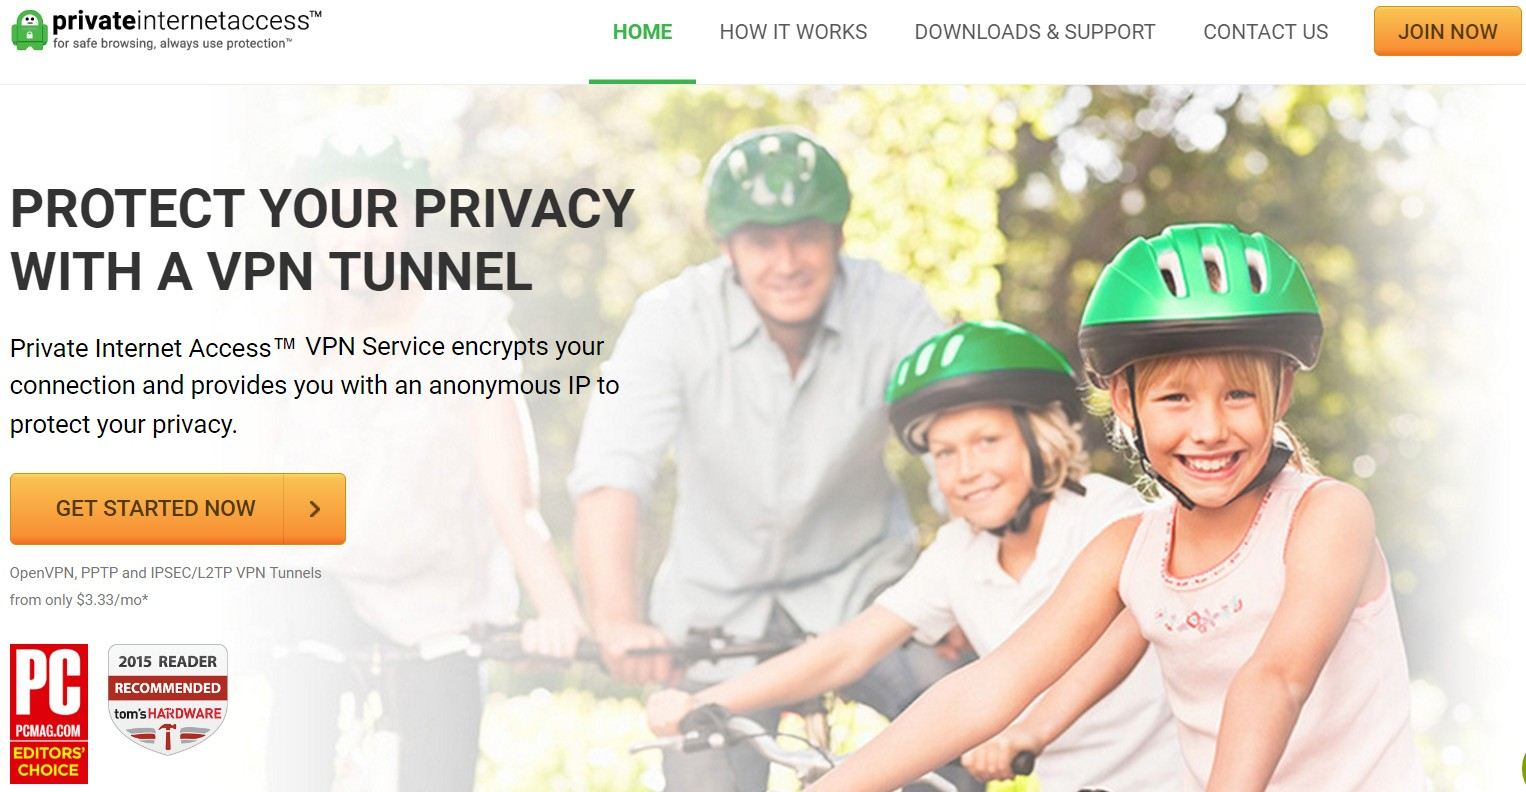 Private Internet Access - PIA - Home Page